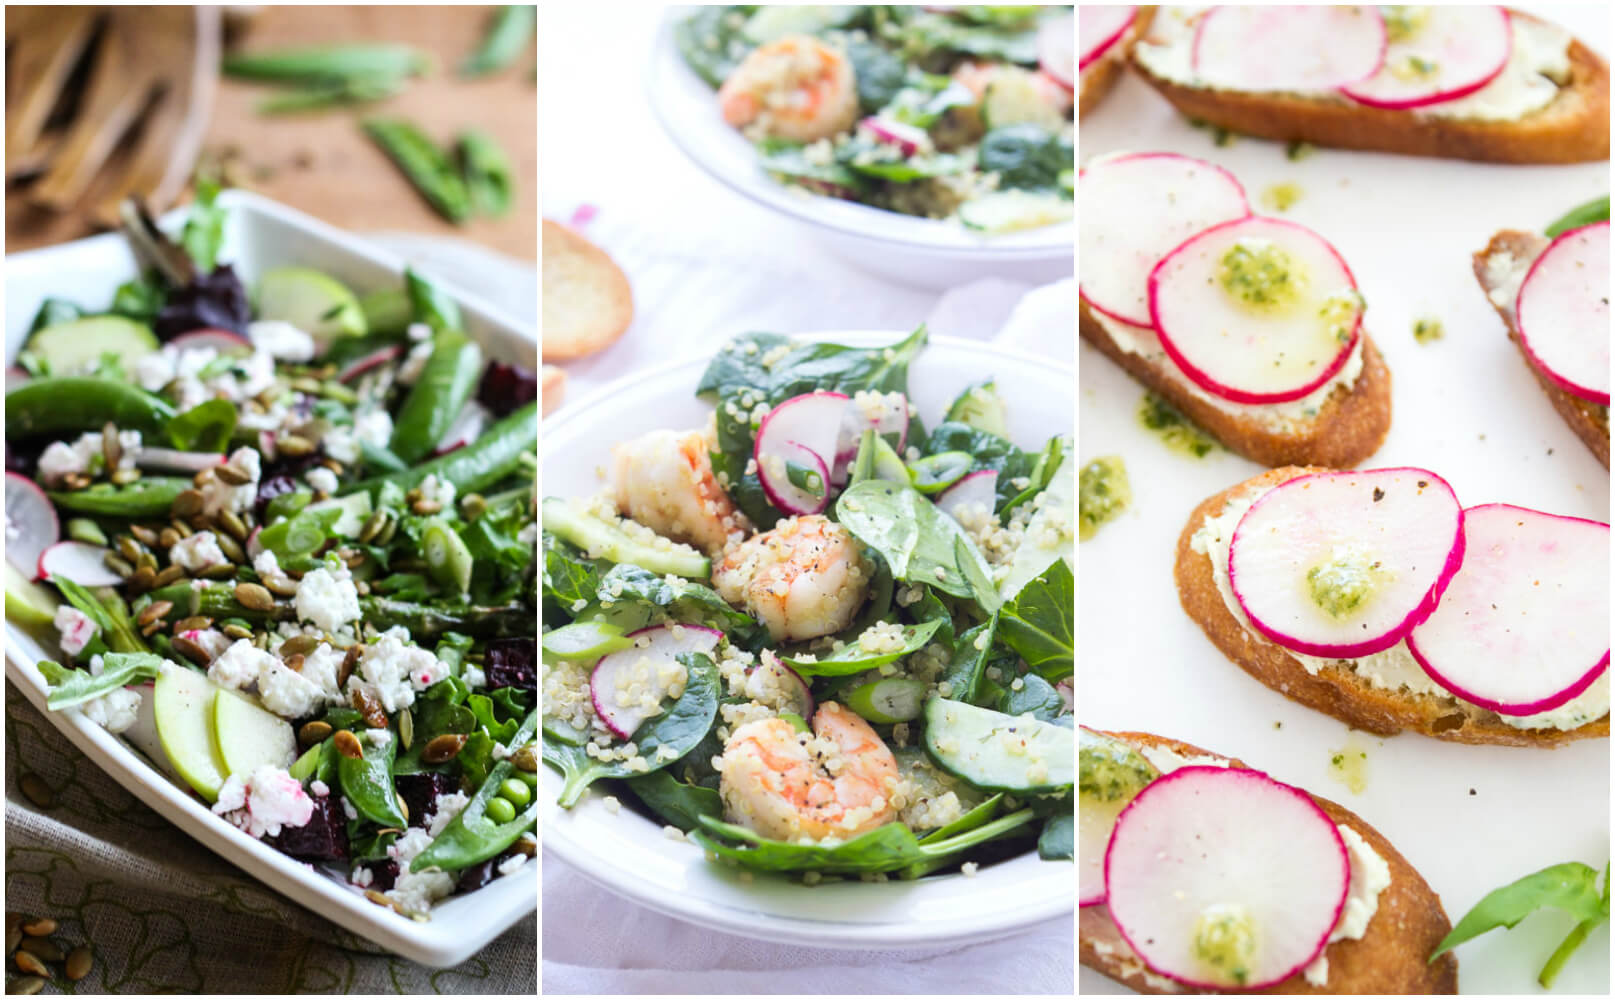 Best radish recipes + guide to spring produce | littlebroken.com @littlebroken